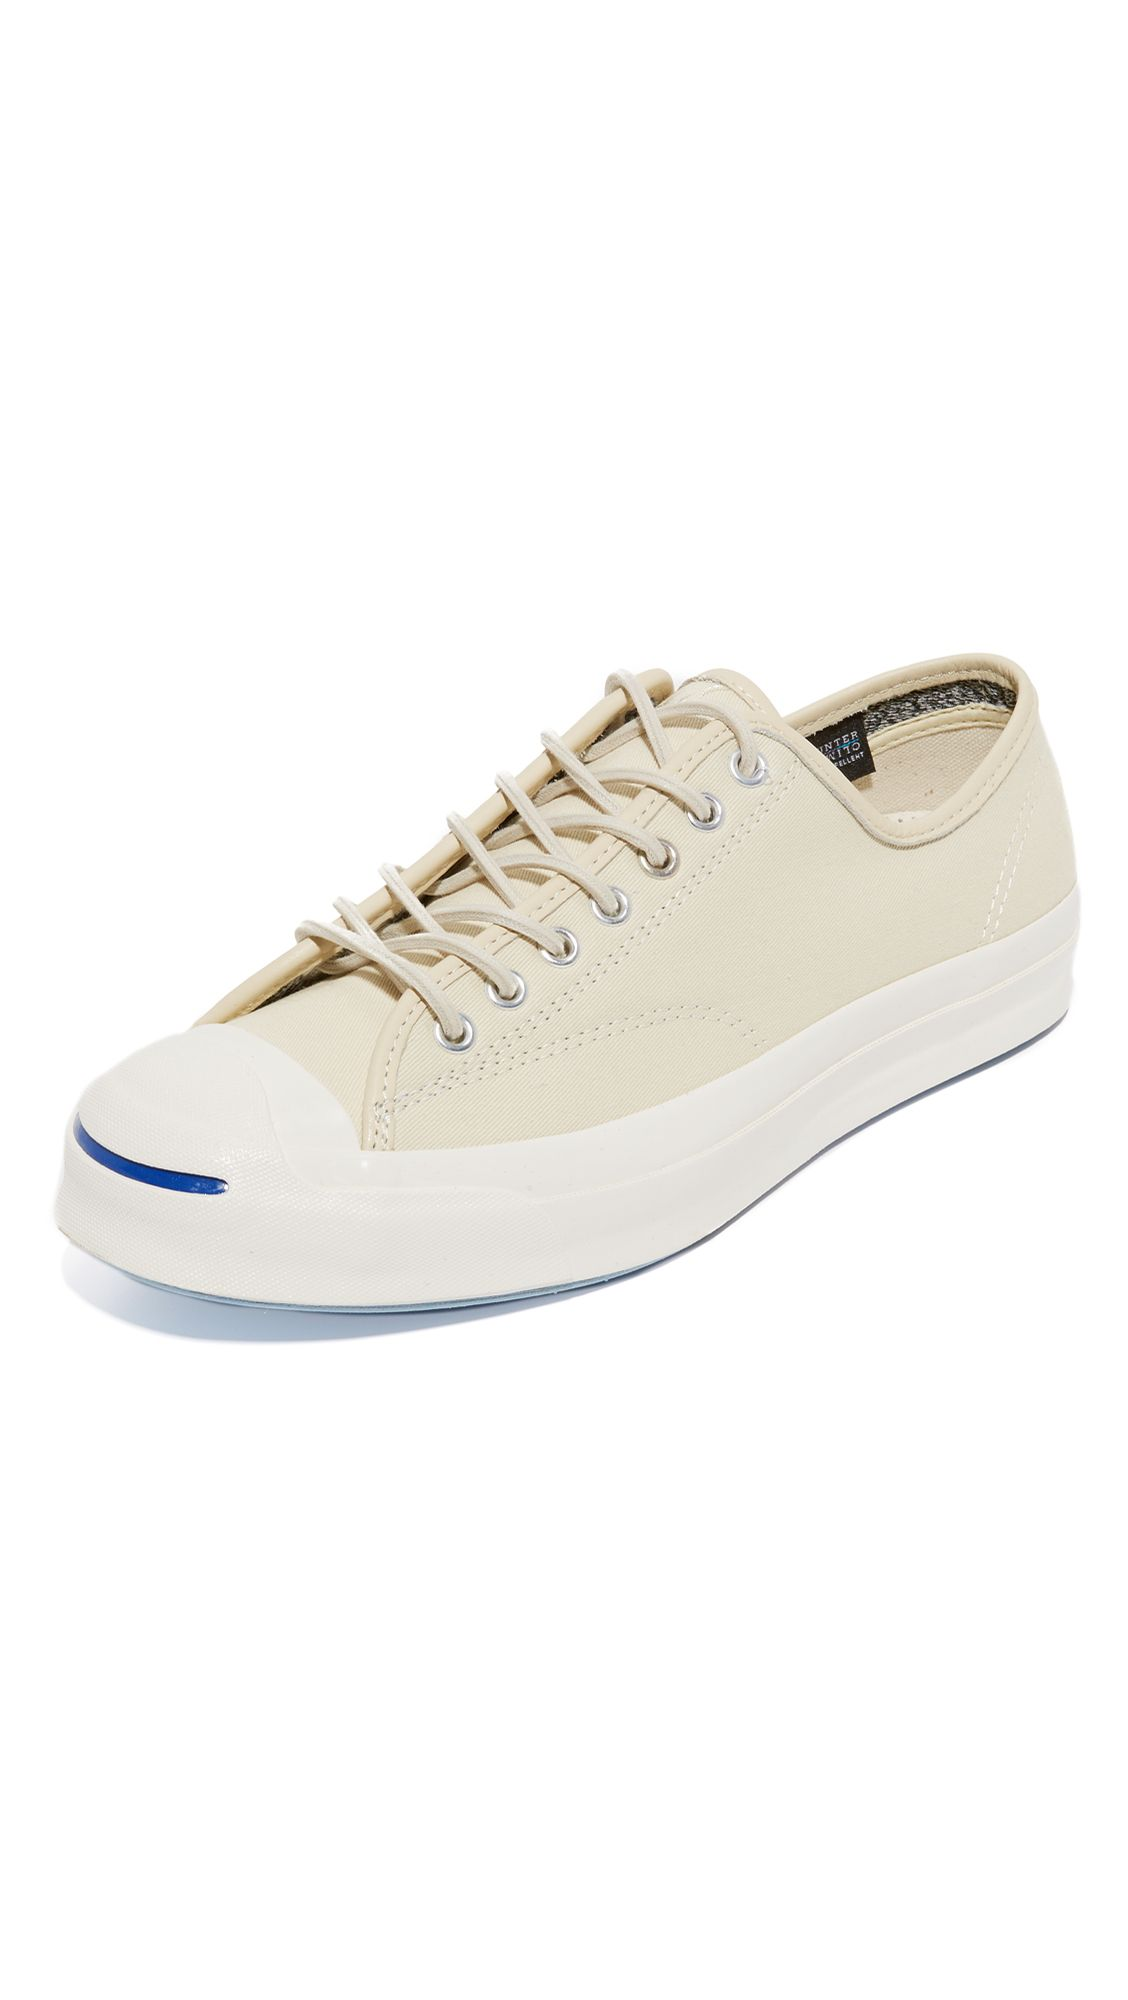 a76d2f143792 CONVERSE Jack Purcell Signature Sheild Sneakers.  converse  shoes  sneakers